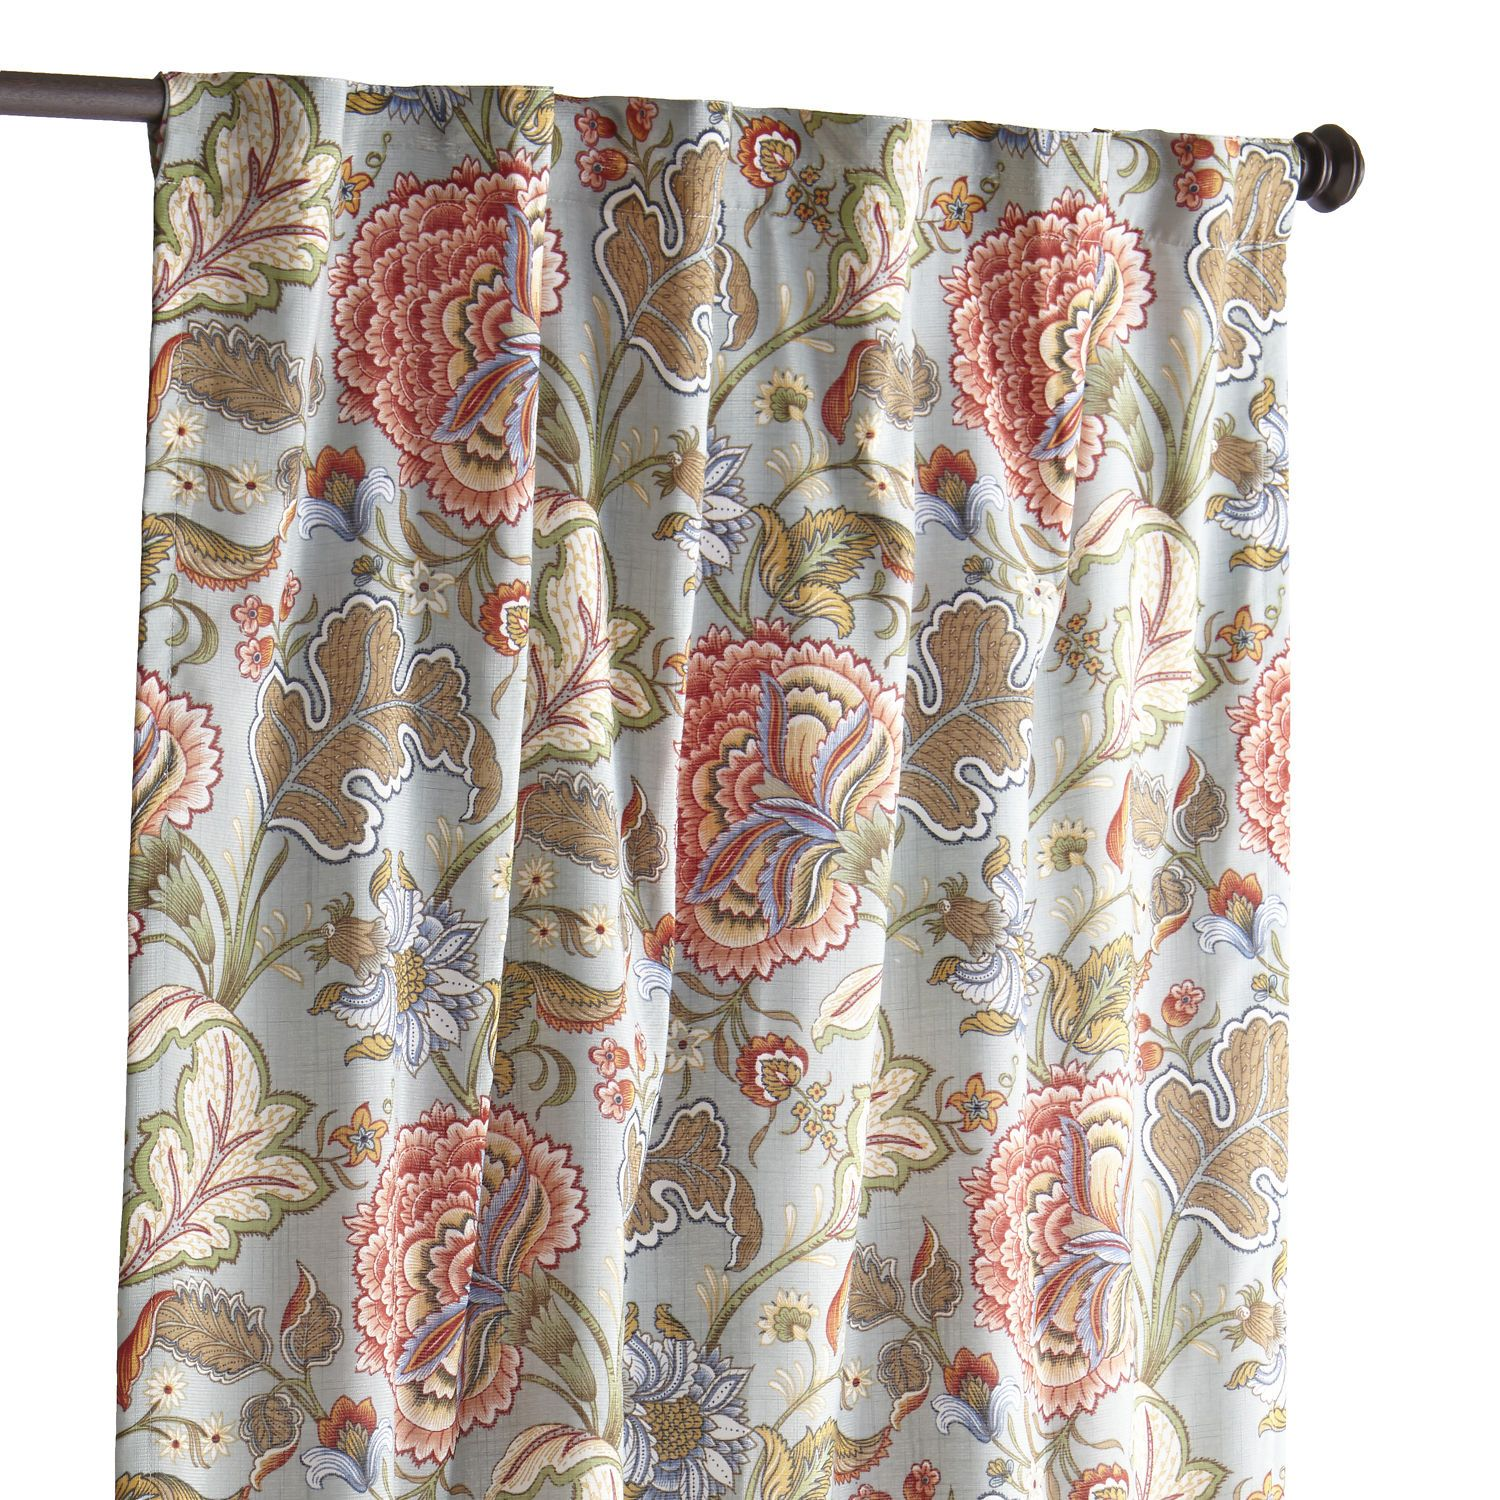 Floral Blue Meadow 84 Curtain CurtainsHanging GardensPier 1 ImportsDining RoomsMaster